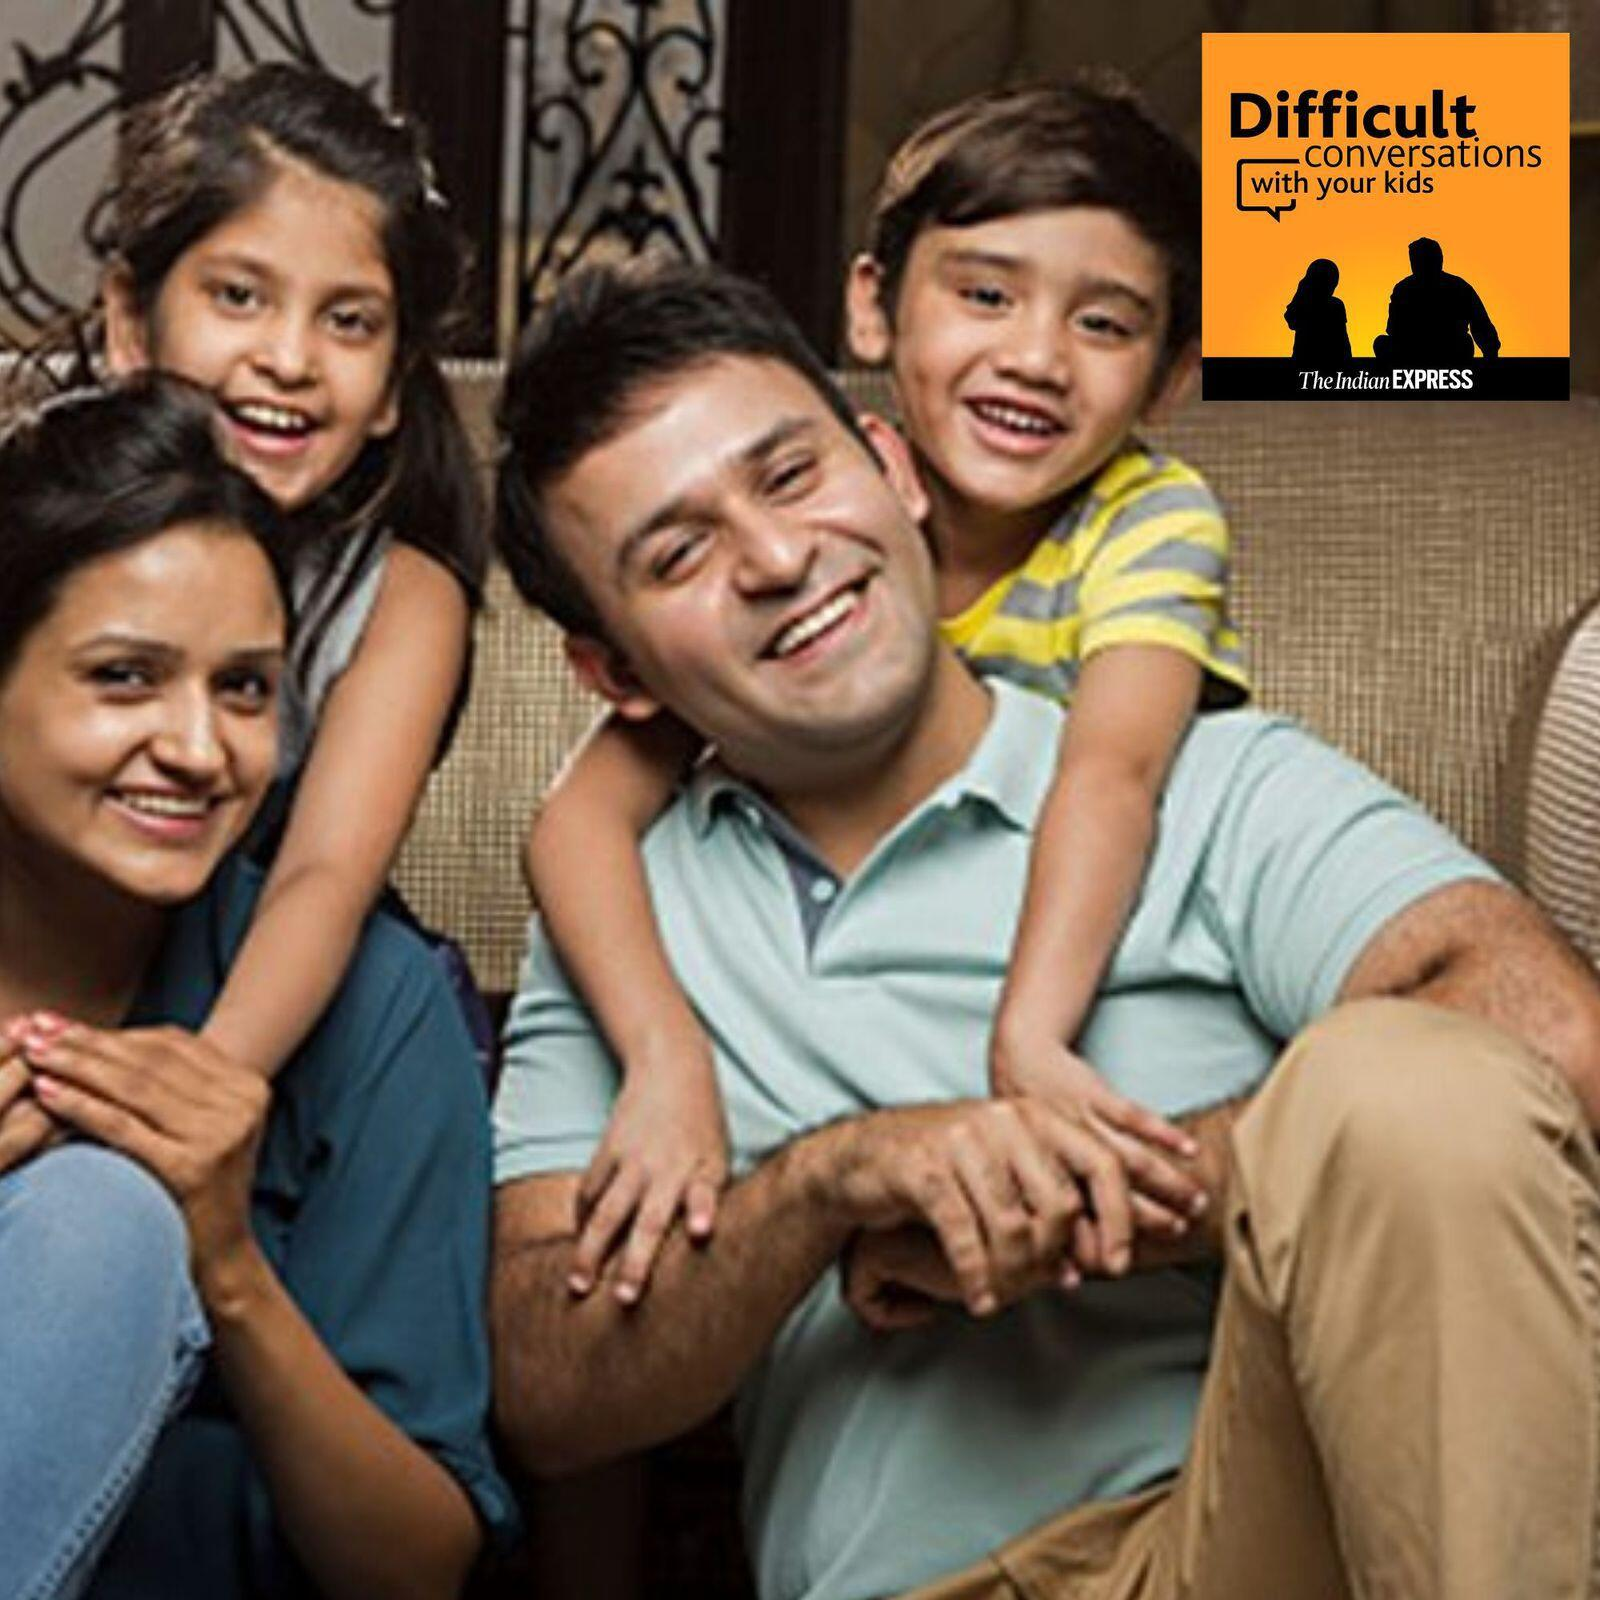 26: Parenting in the modern age, with Dr. Amit Sen